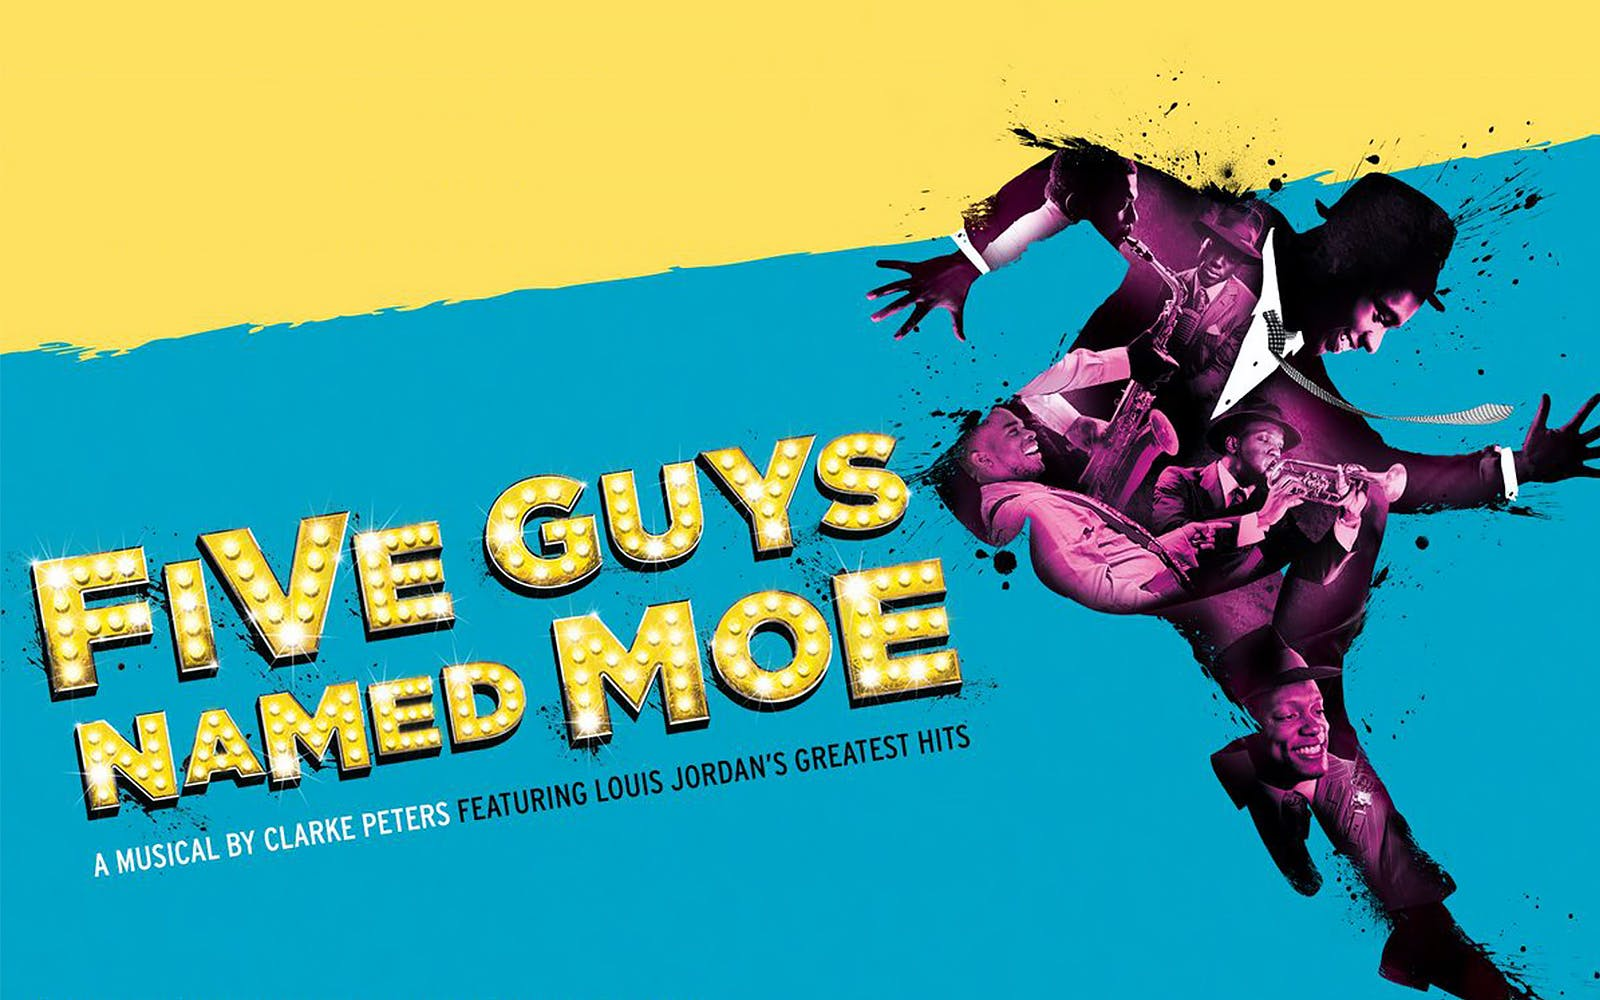 five guys named moe-1